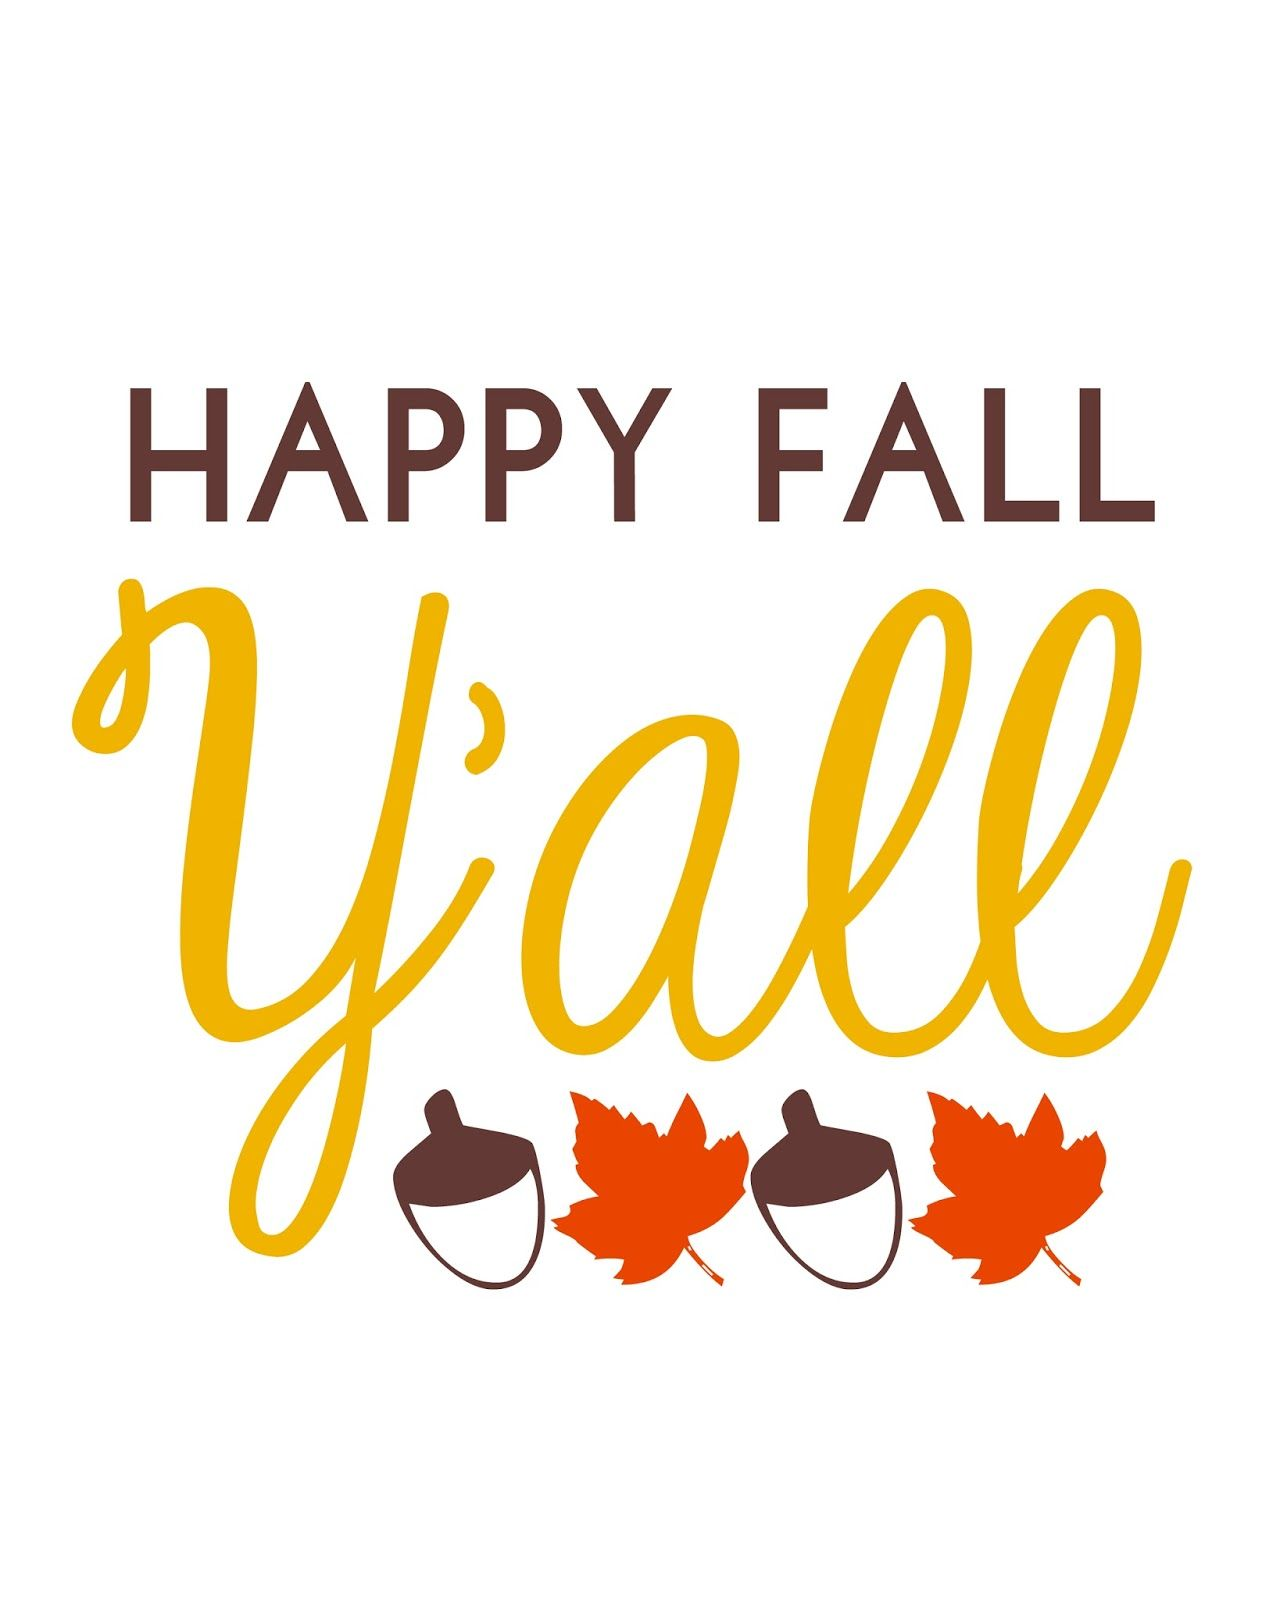 image regarding Happy Fall Yall Printable known as Content Tumble Yall! Absolutely free Slide printables upon the weblog